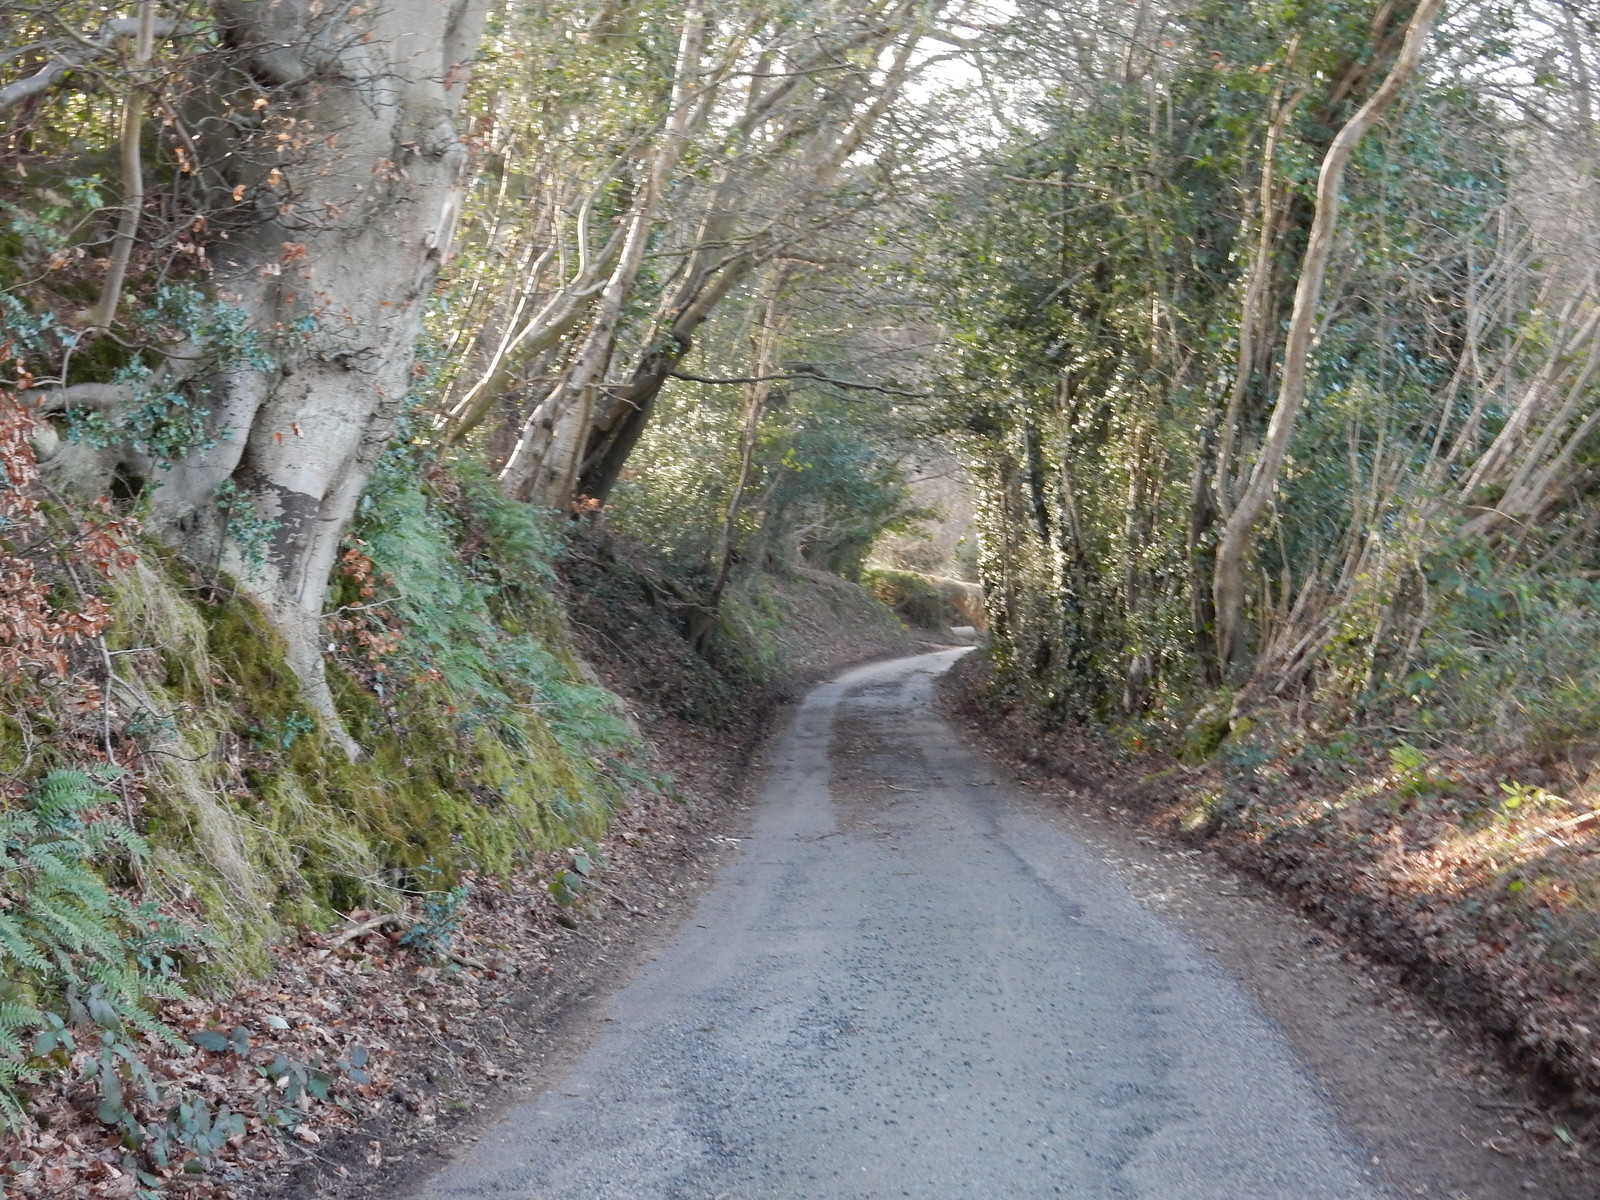 twisty lane Etchingham to Wadhurst